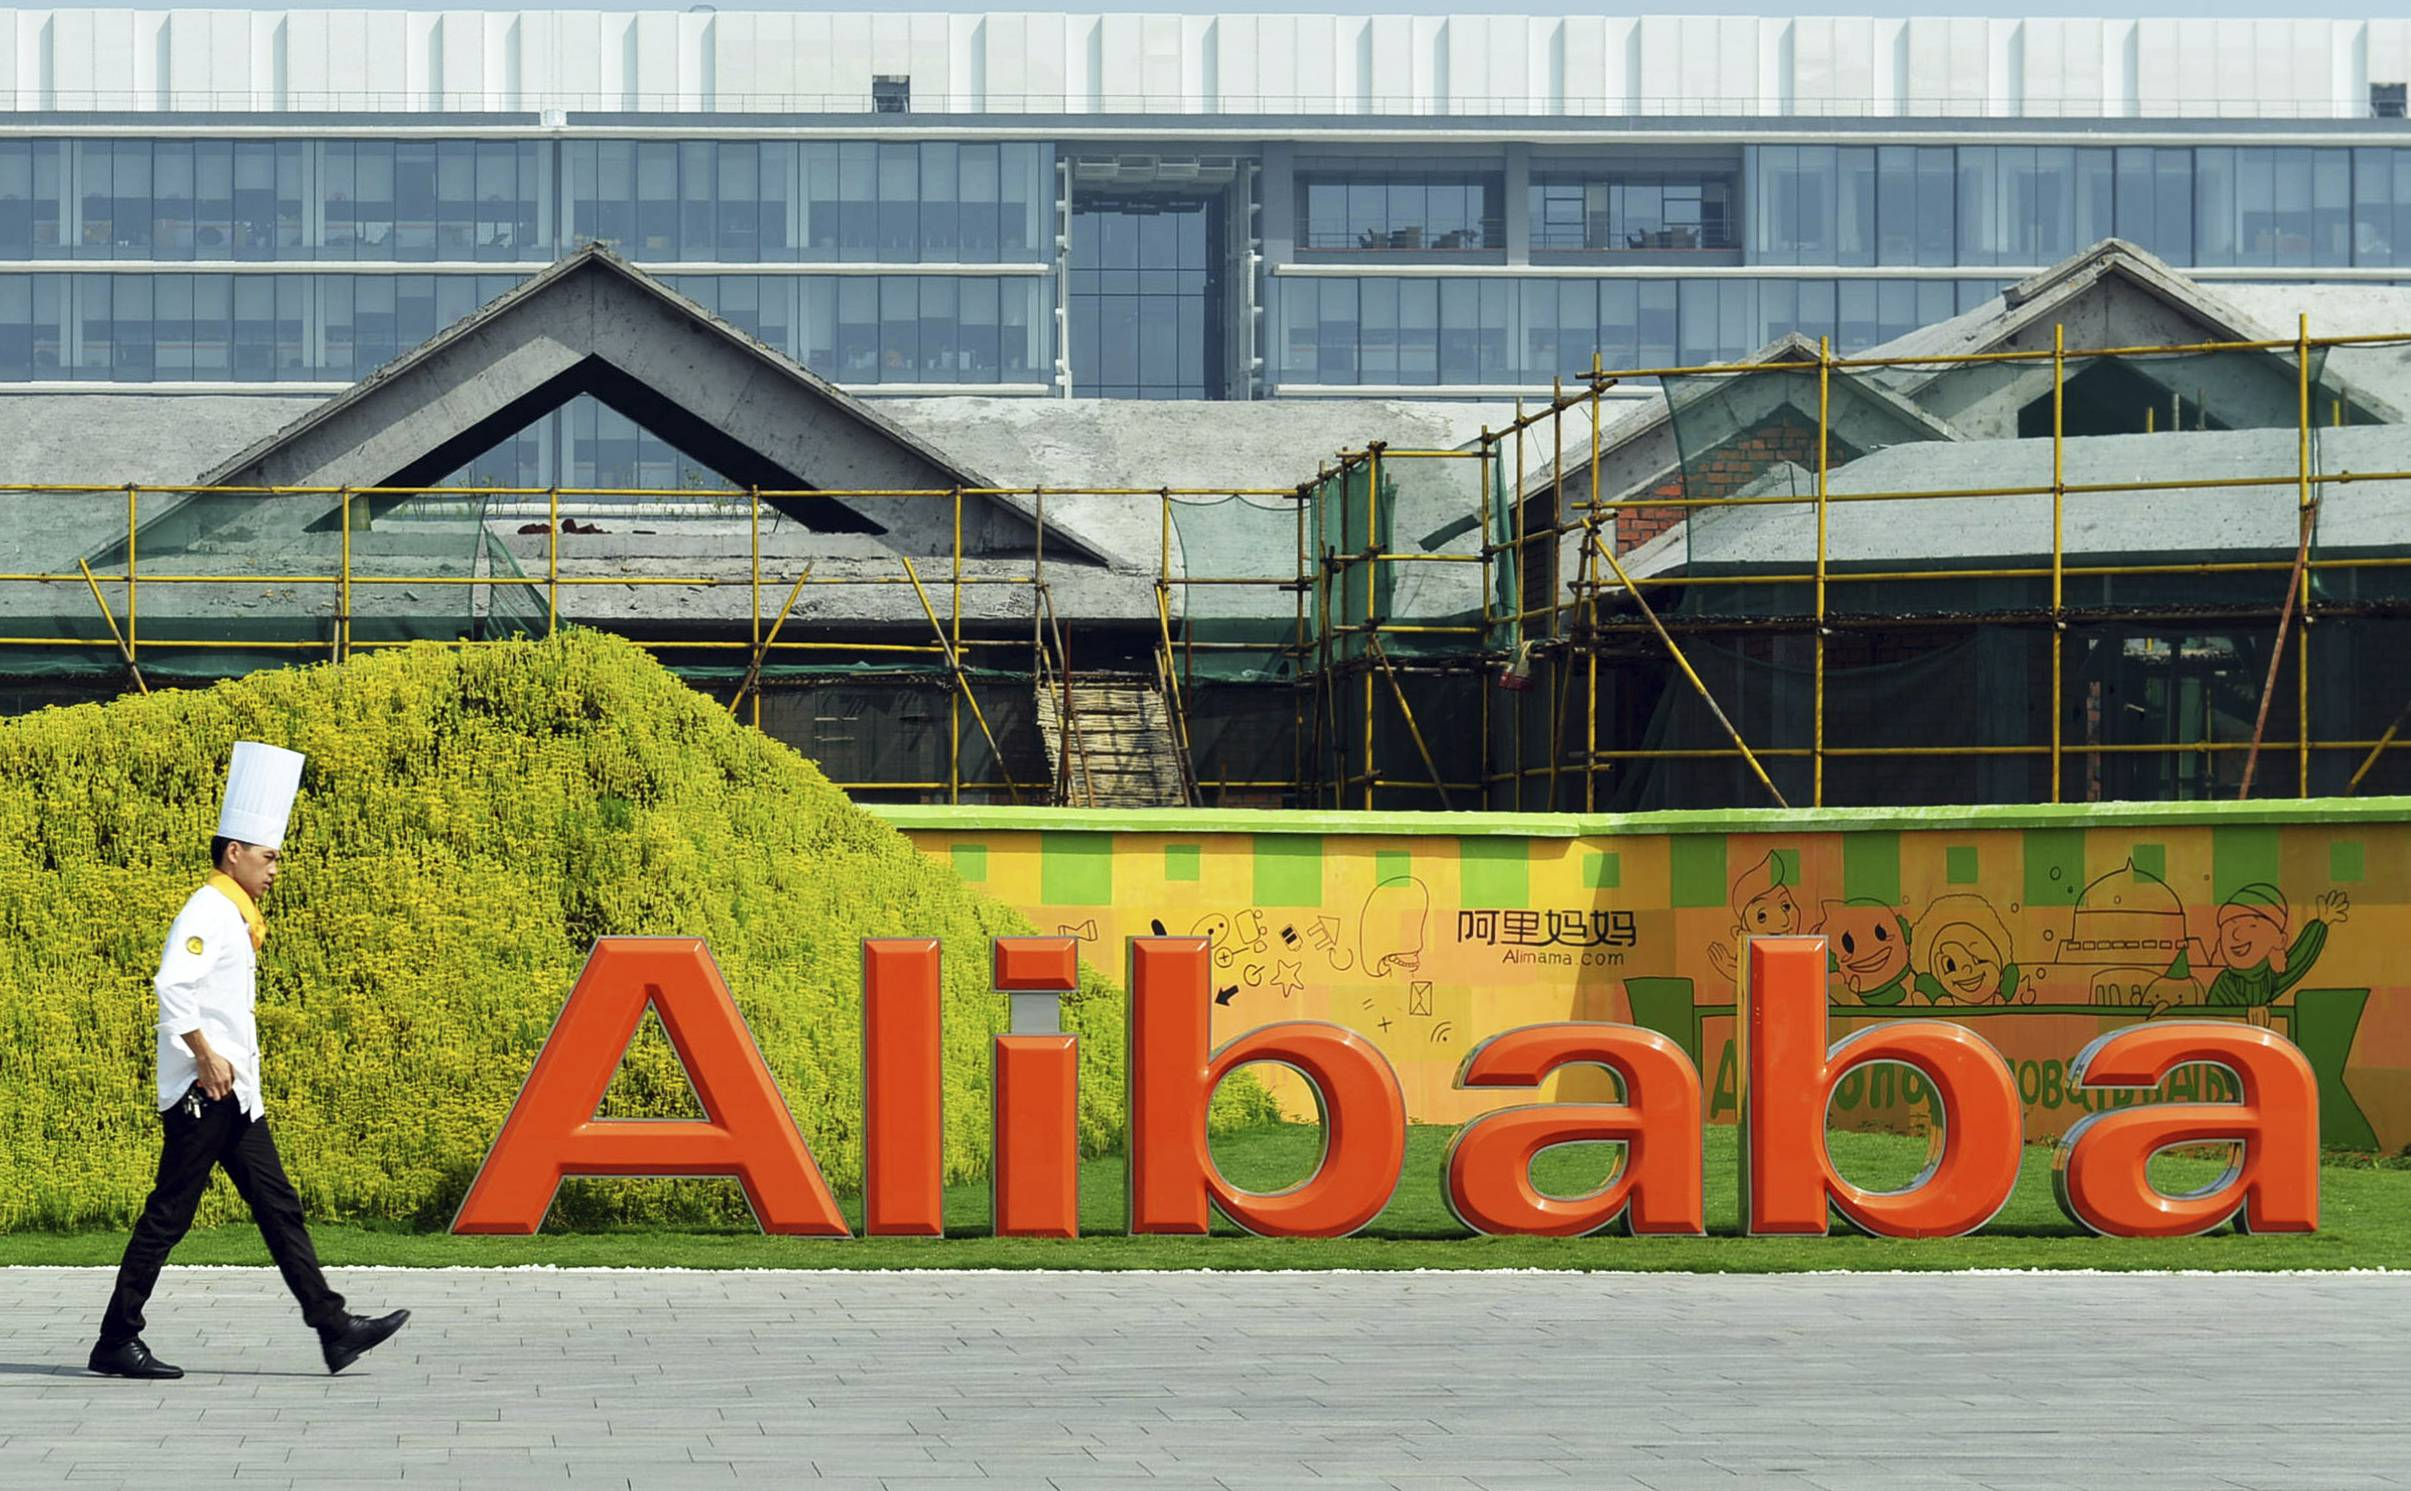 Alibaba Group Holding Ltd., the dominant online shopping platform in China, is tapping demand from the bargain hunters next door as it tries to show potential investors a business model that can succeed abroad.